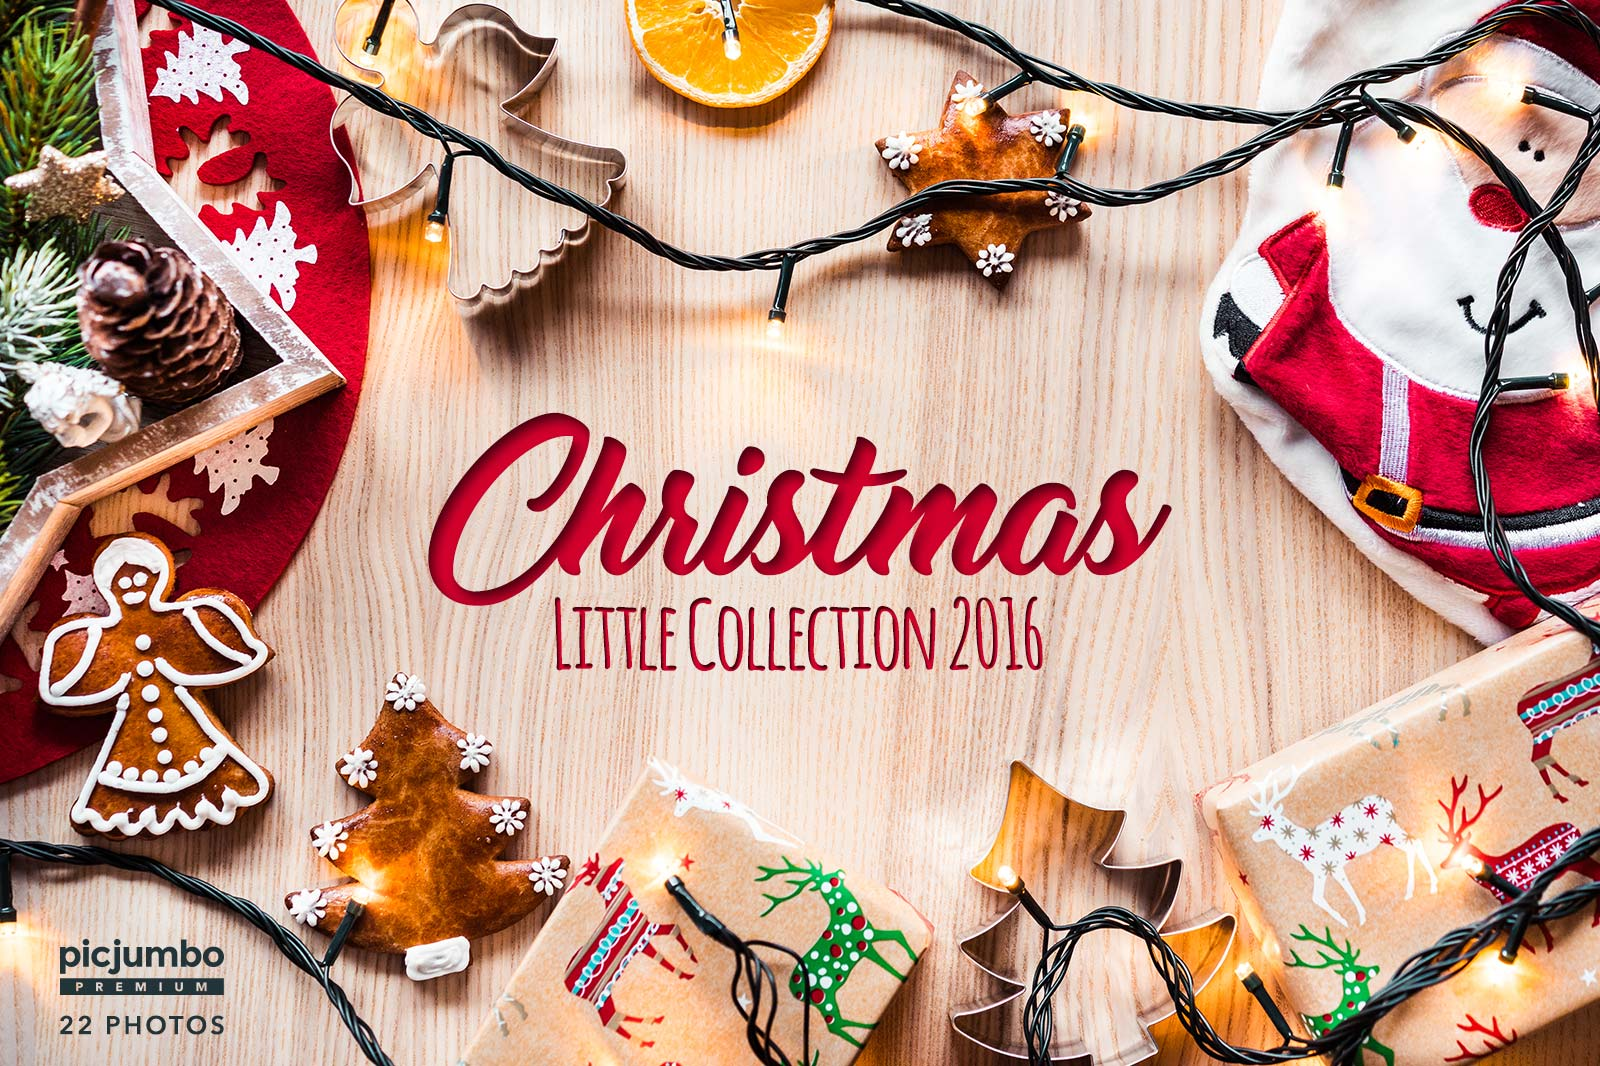 Join PREMIUM and get full collection now: Christmas Little Collection 2016